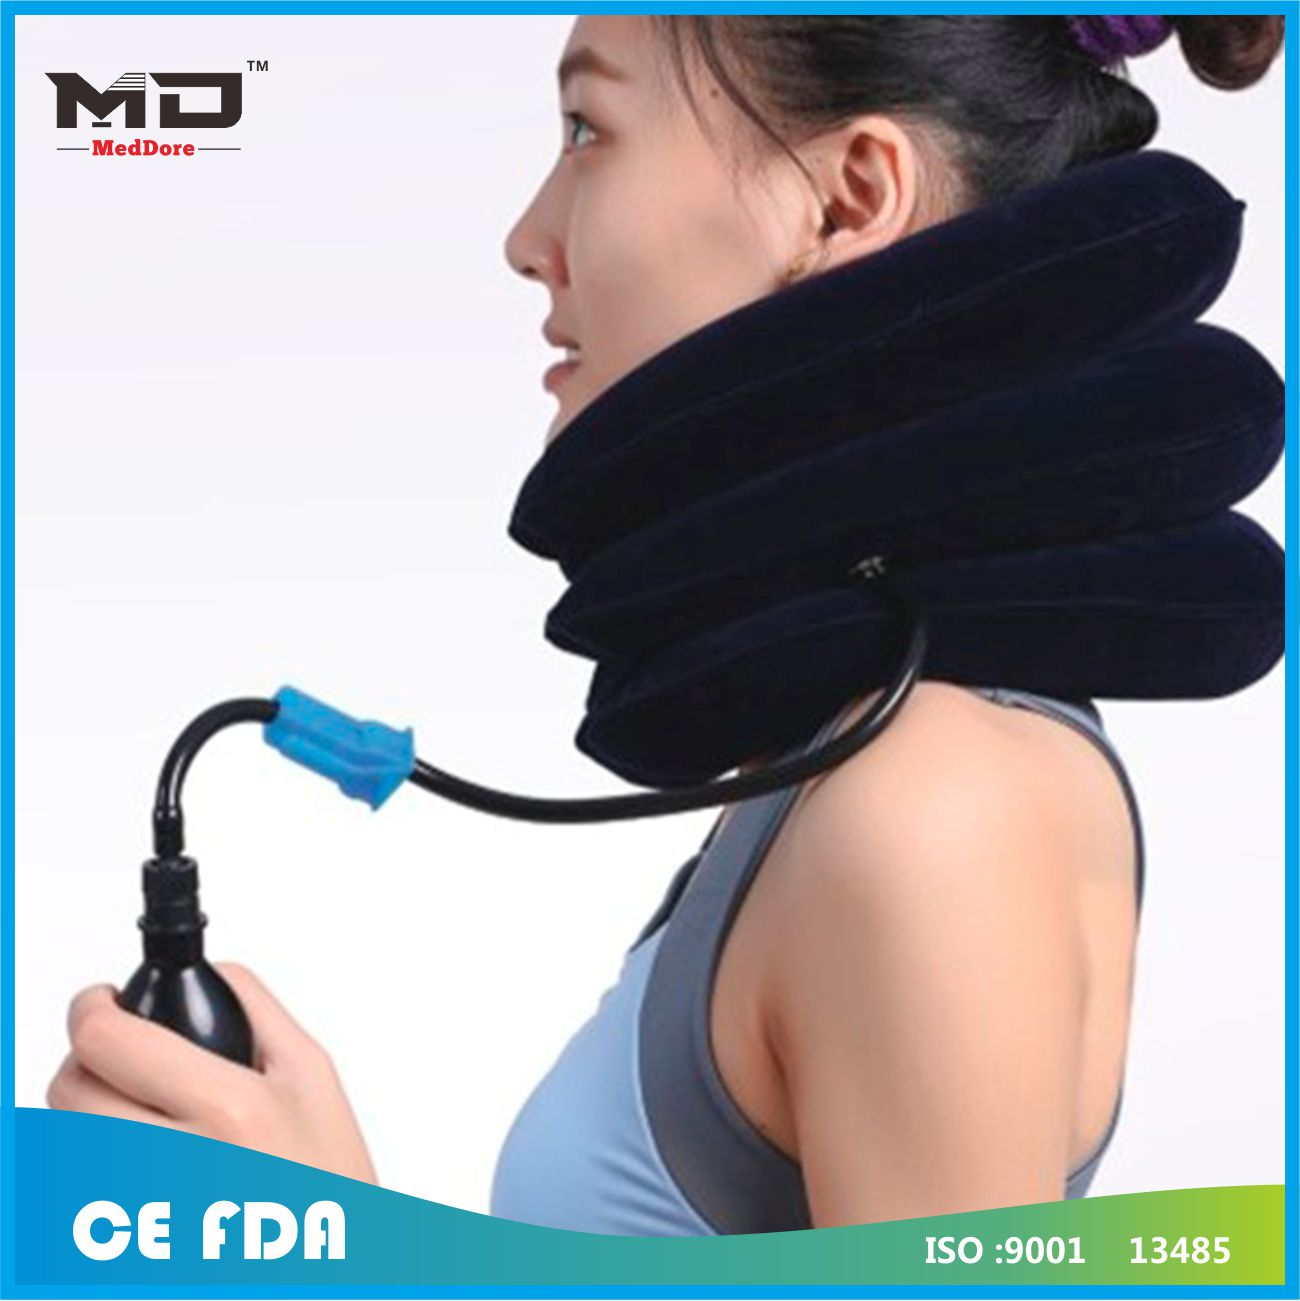 Meddore Adjustable Cervical Collar Orthopedic Stiff Neck Cervical Collar